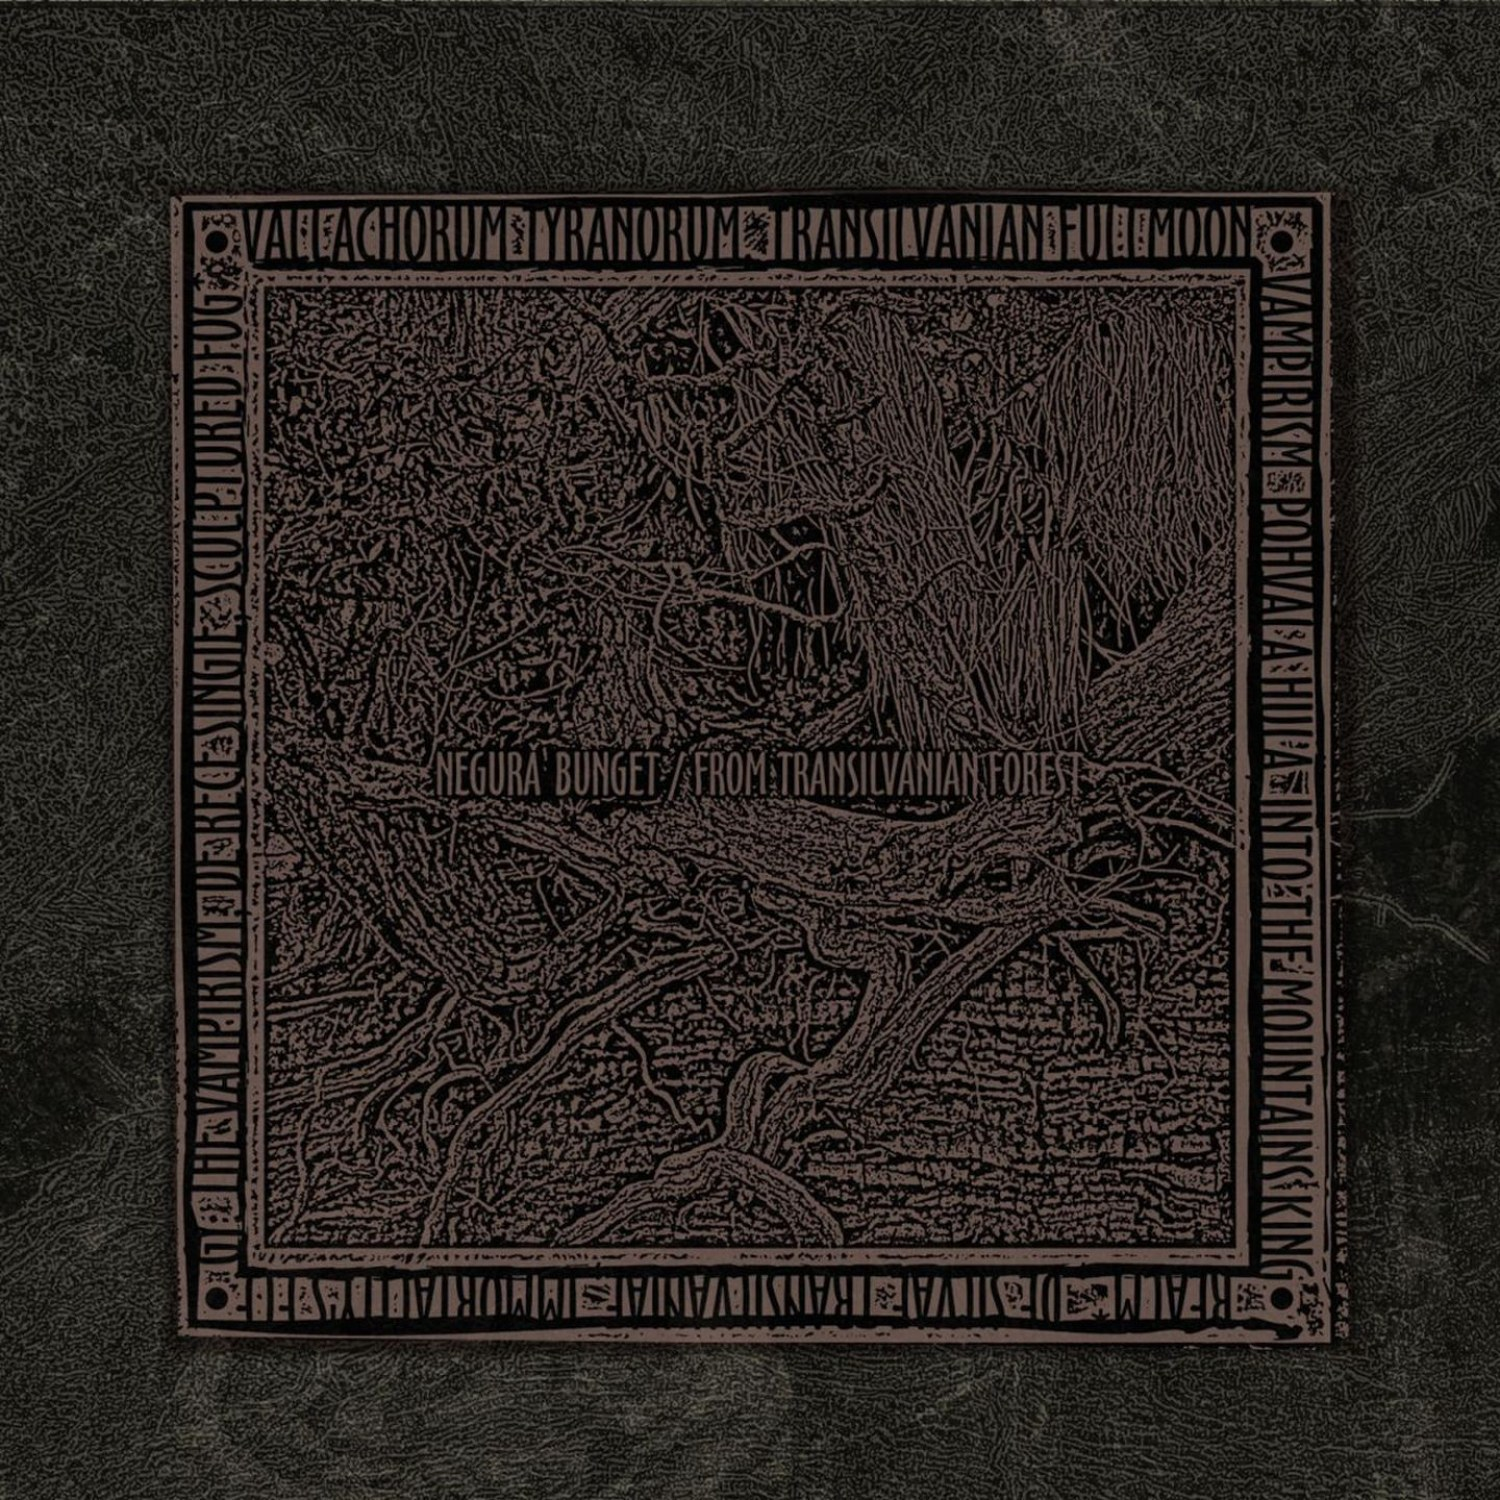 Review for Negură Bunget - From Transilvanian Forest